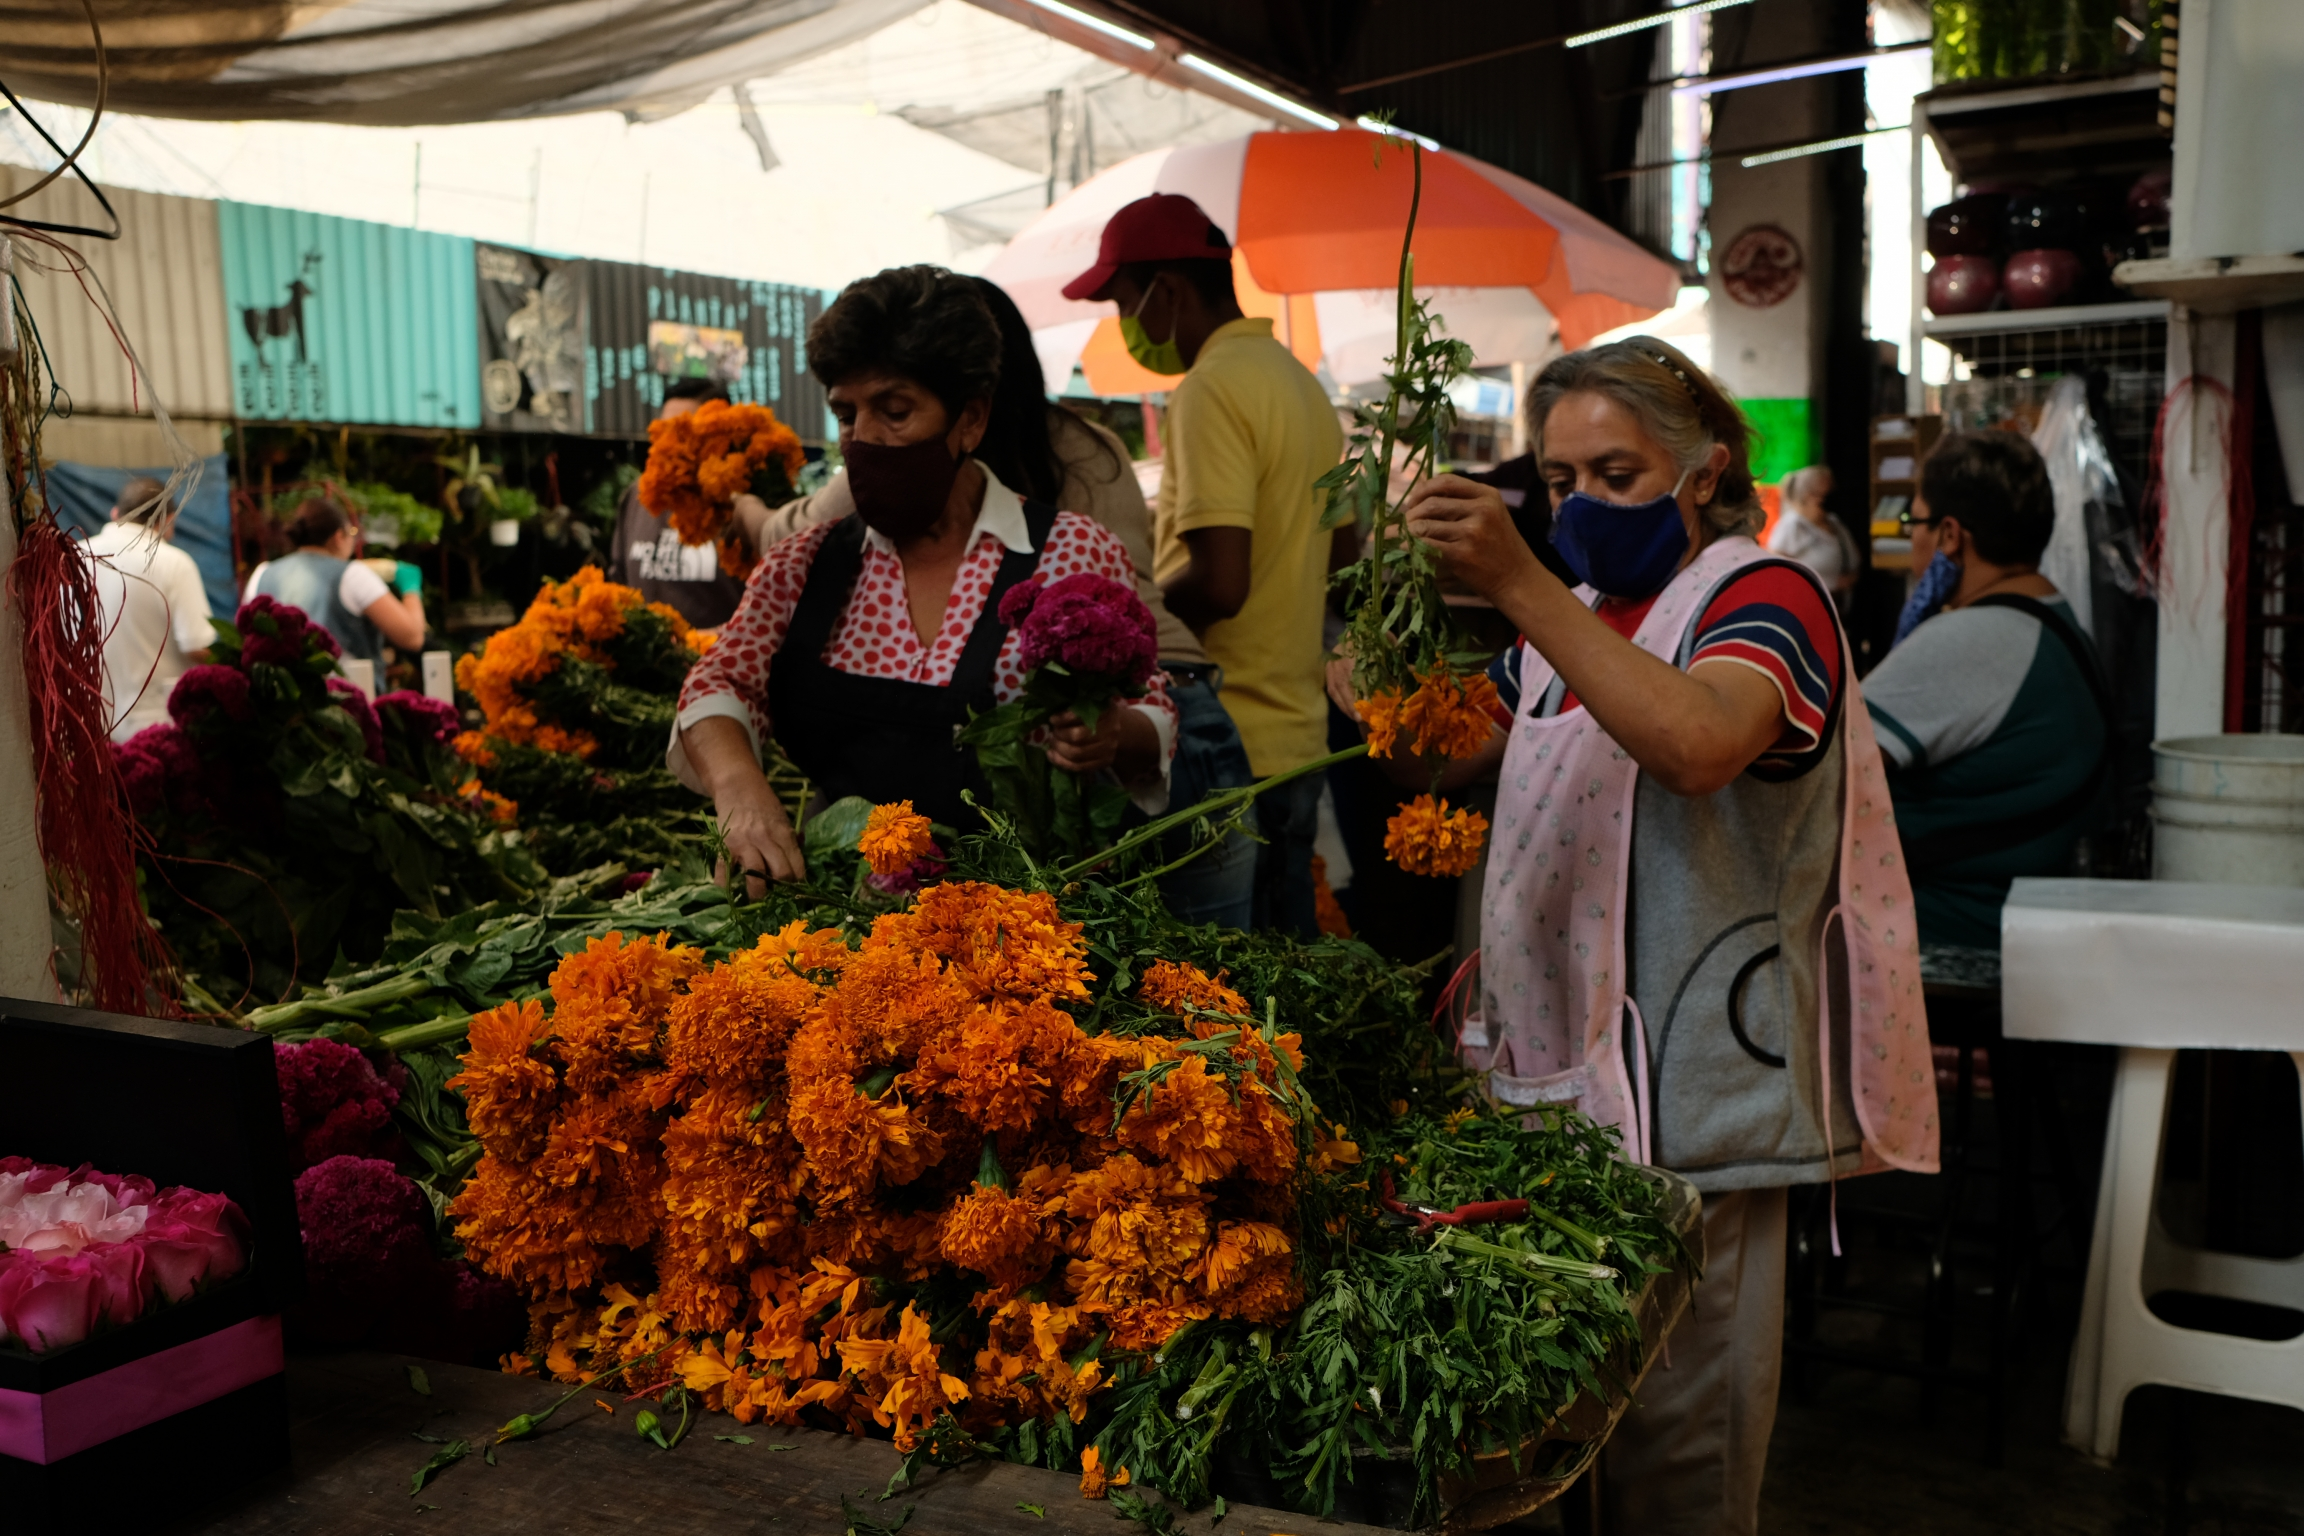 Flower vendors prep freshly harvested marigolds to sell. Many vendors agree that this year sales are very slow.